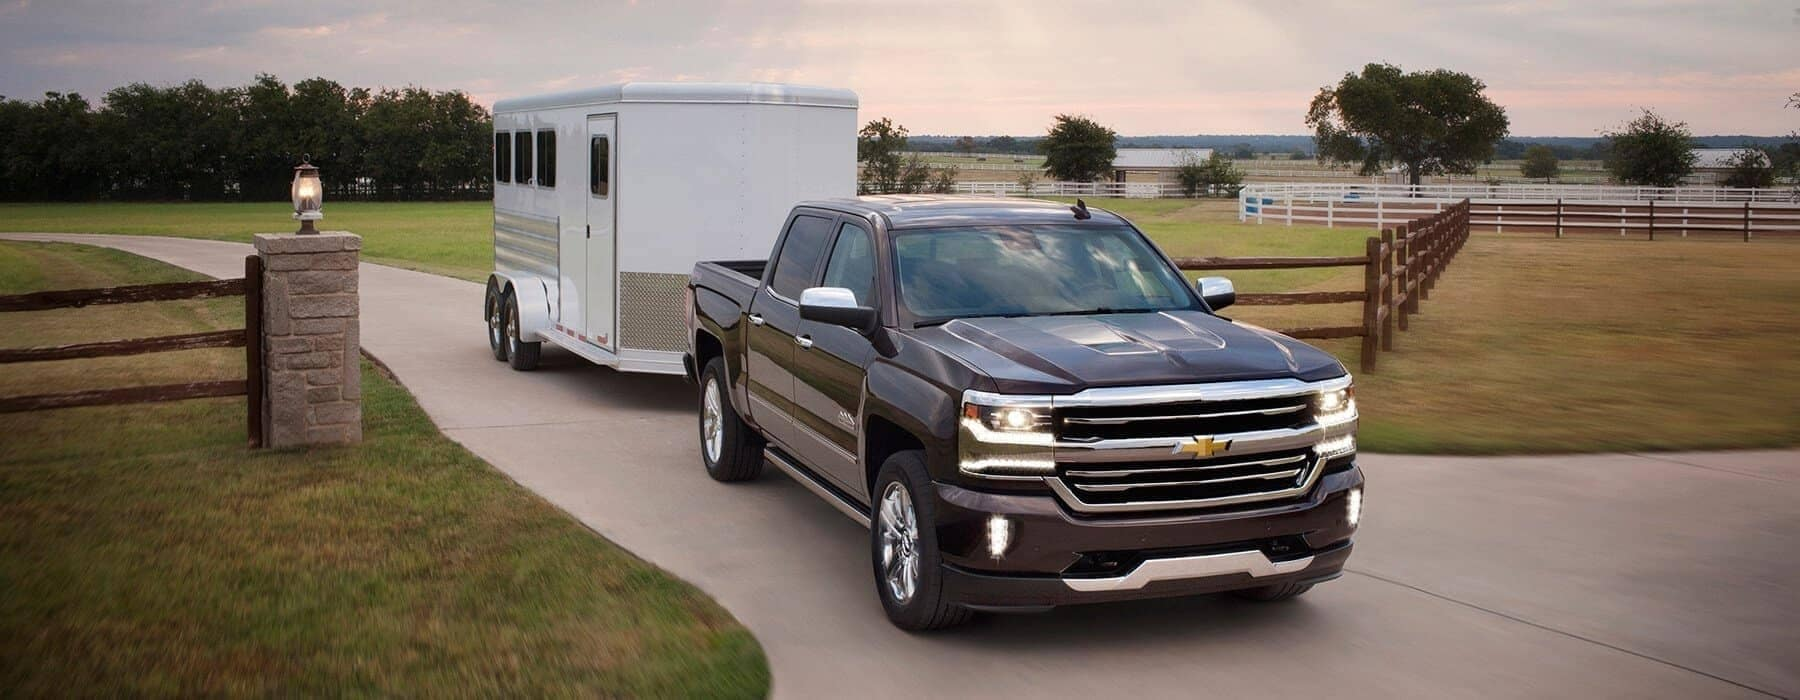 2019 Chevy Silverado 1500 Towing a Trailer